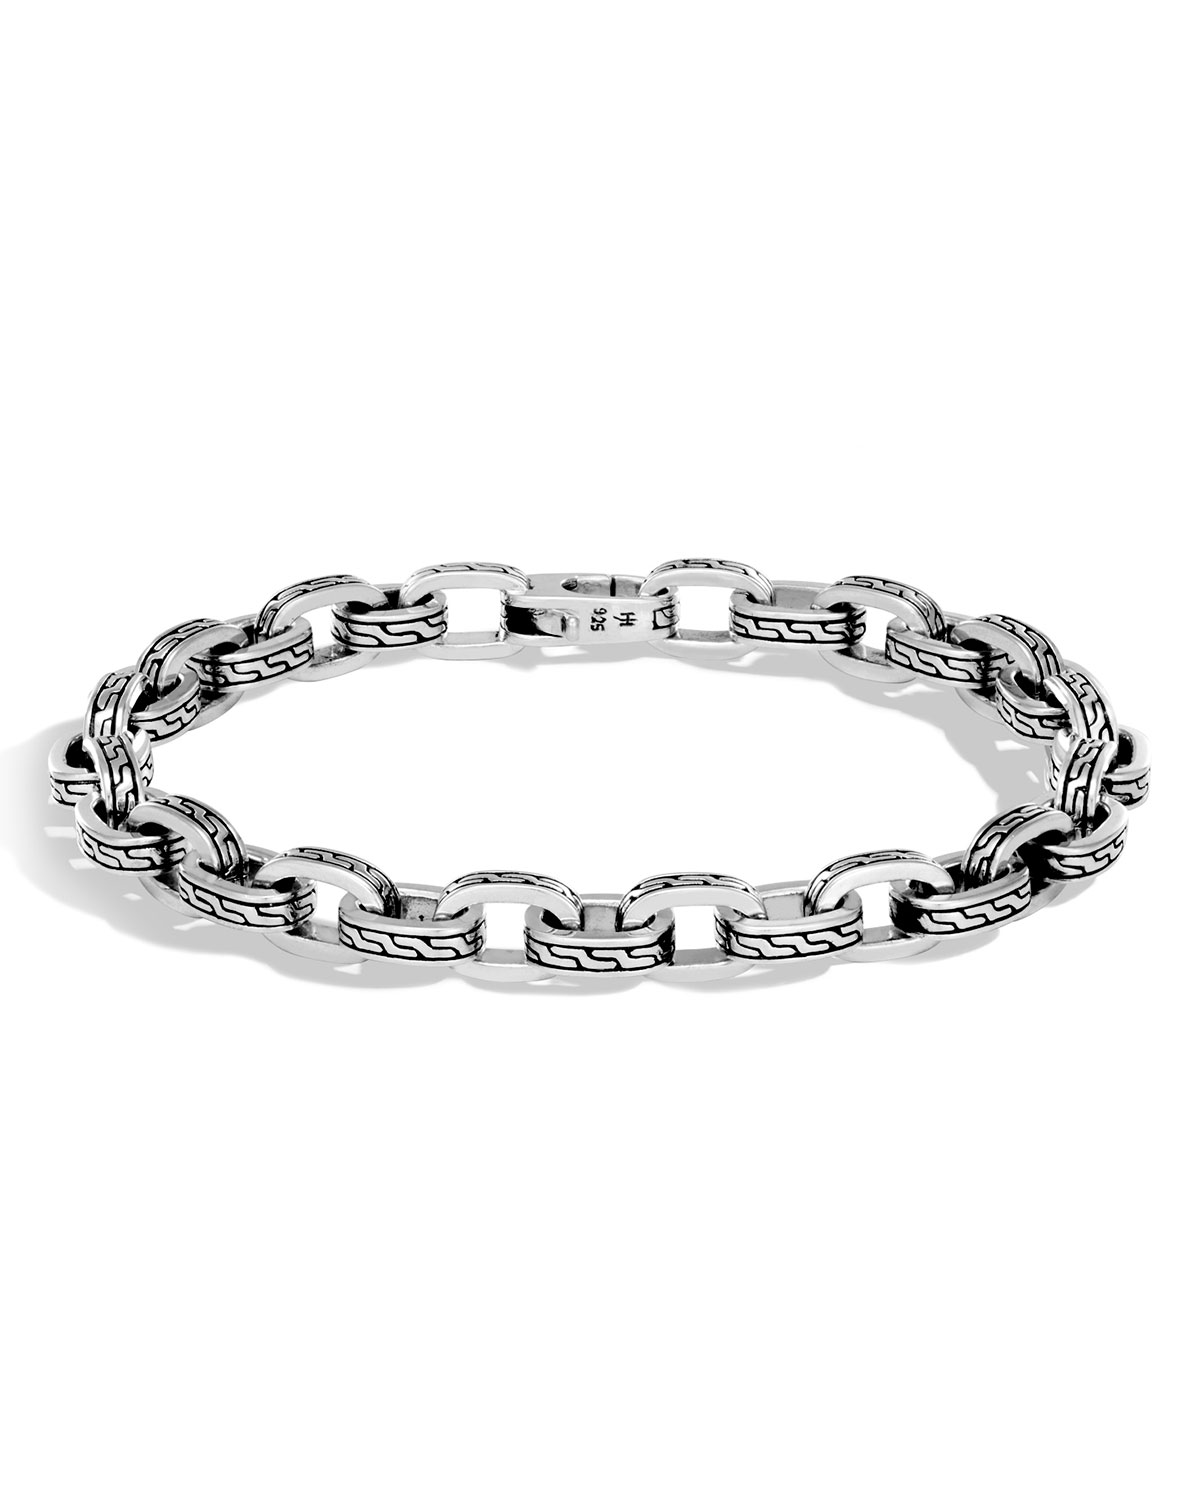 italy sterling bracelets link chy gauge gift give view jewelry curb bracelet chain silver truly engraved heartfelt mens a engravable charm id bling all